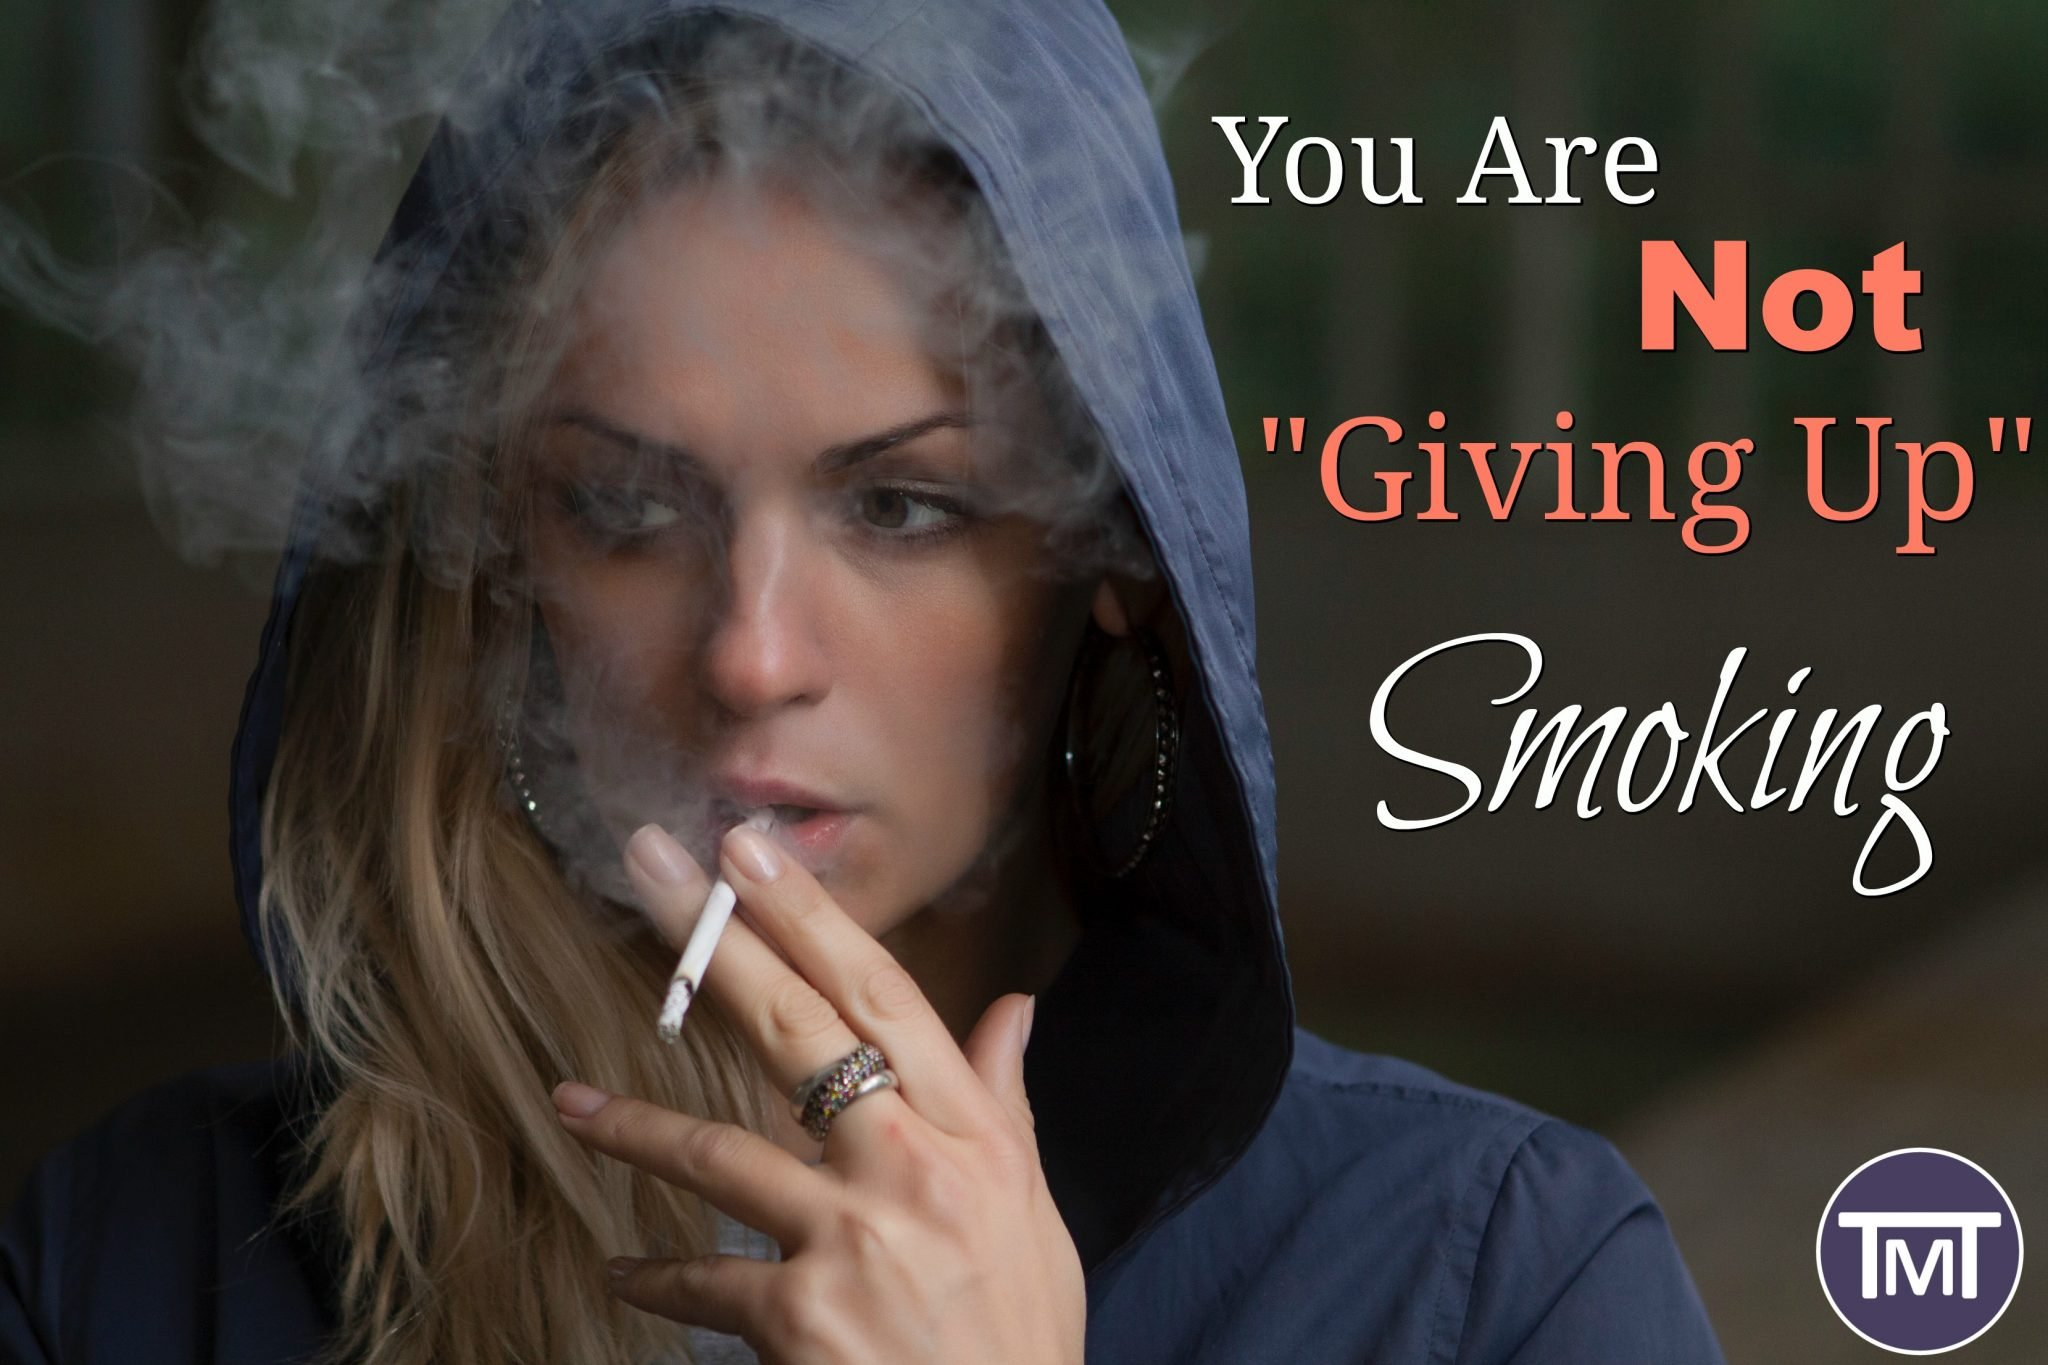 You are not giving up smoking feature